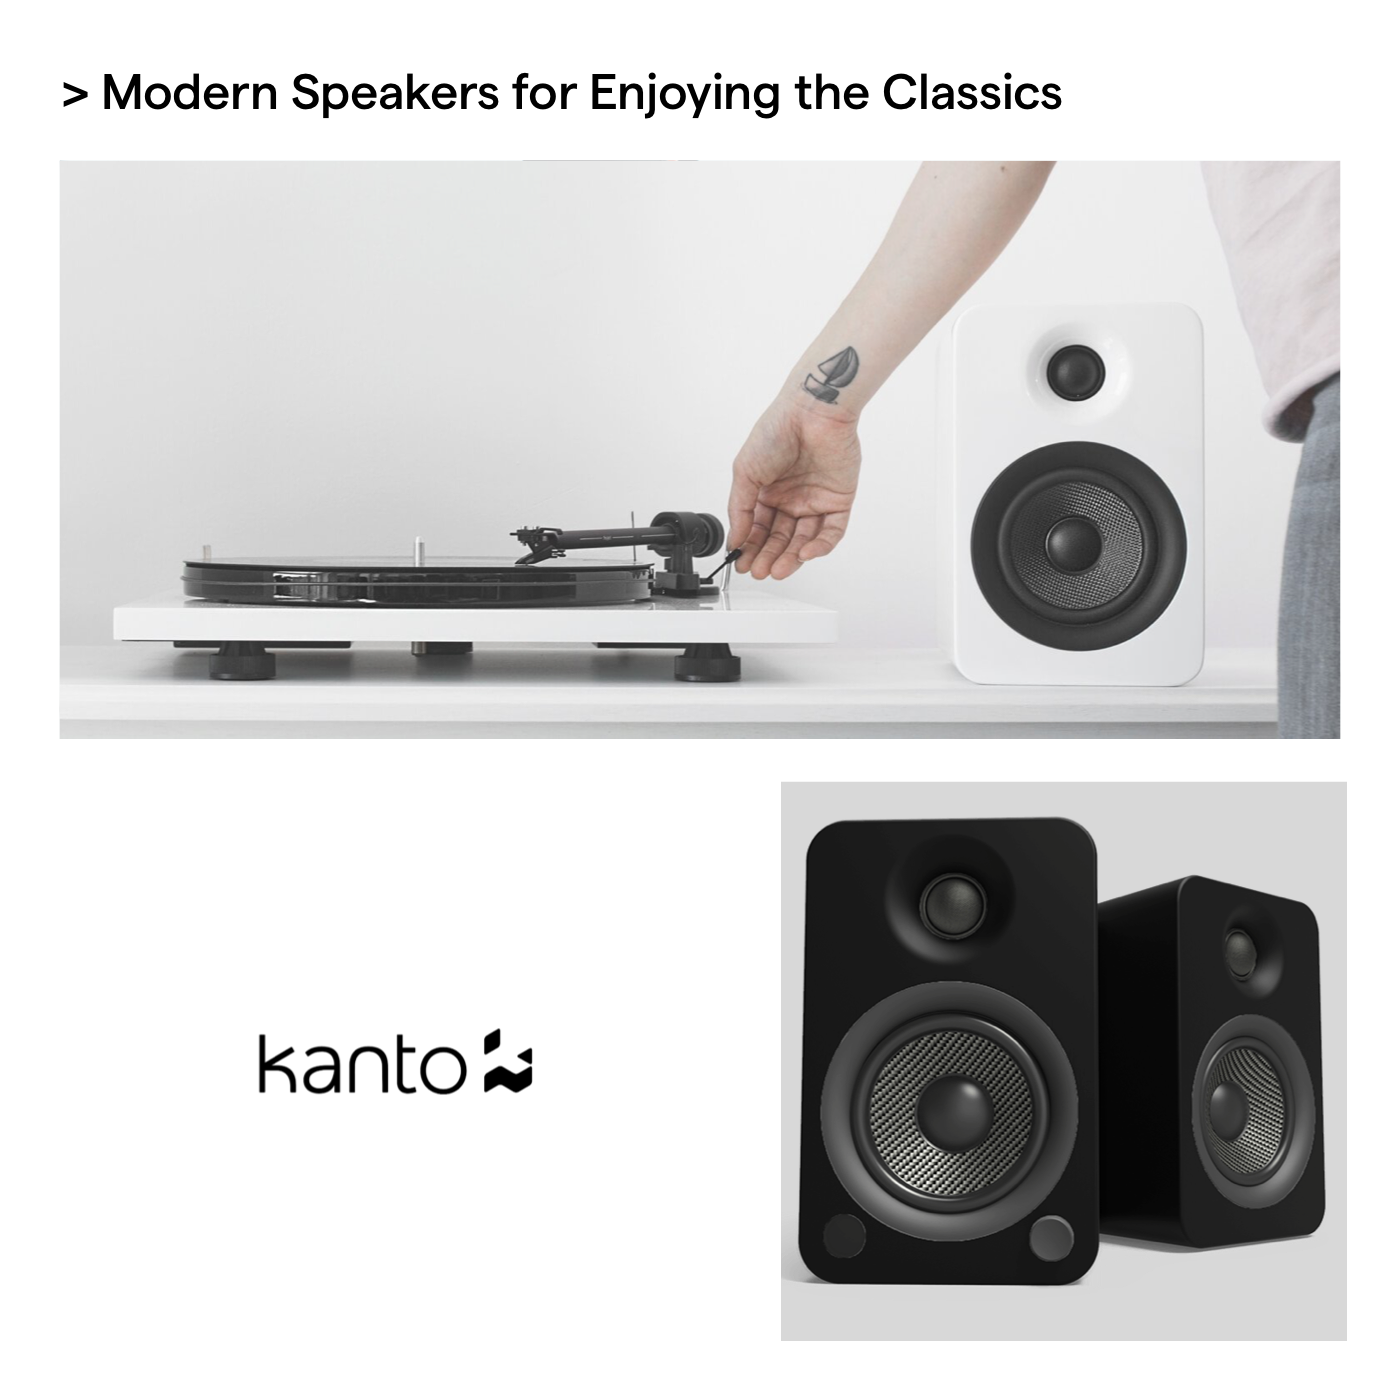 kanto audio speakers father's day advanced essentials gift guide